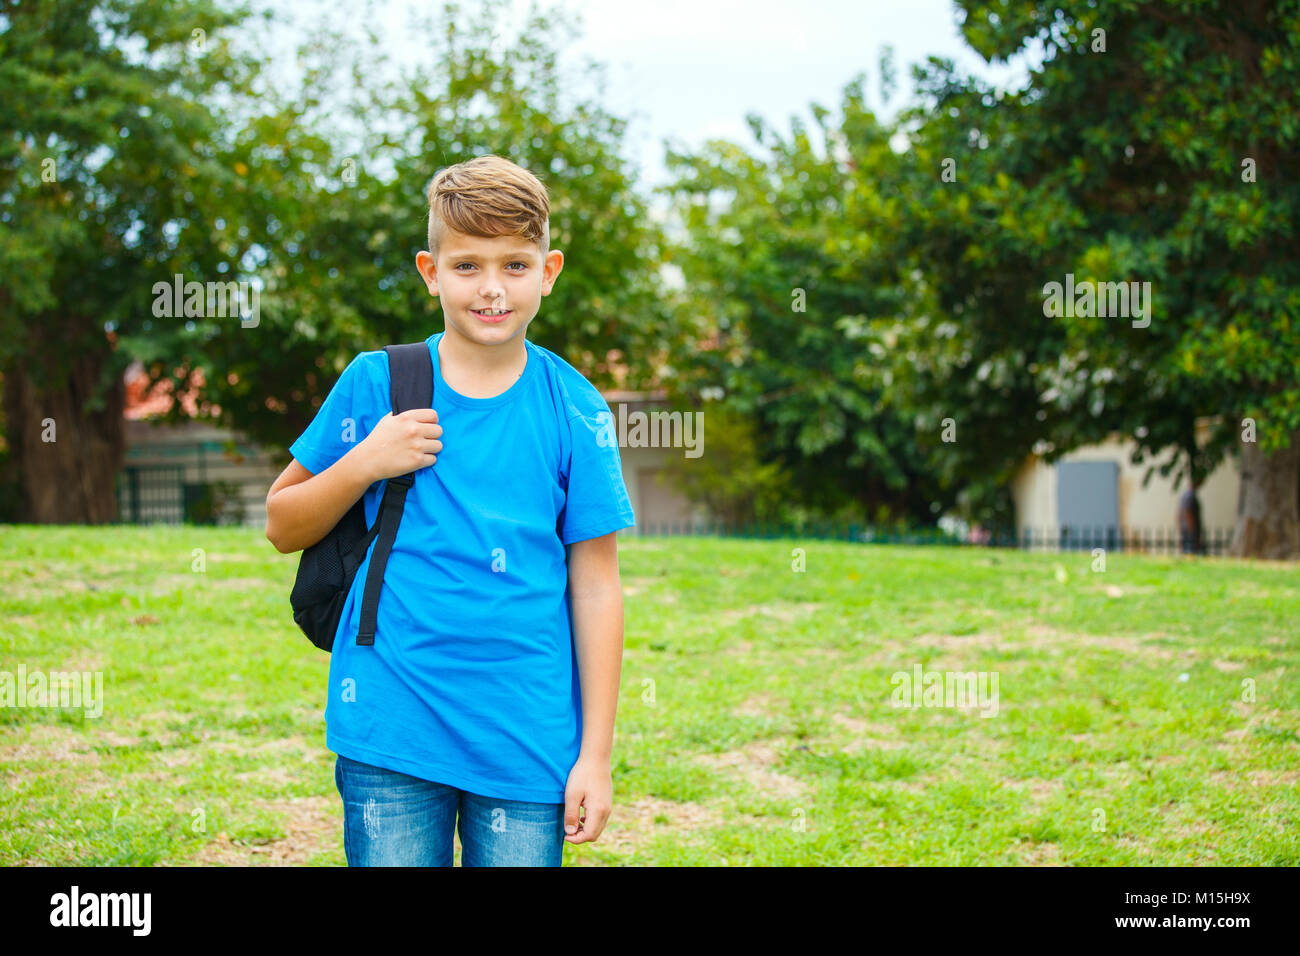 School Boy with backpack at the park - Stock Image